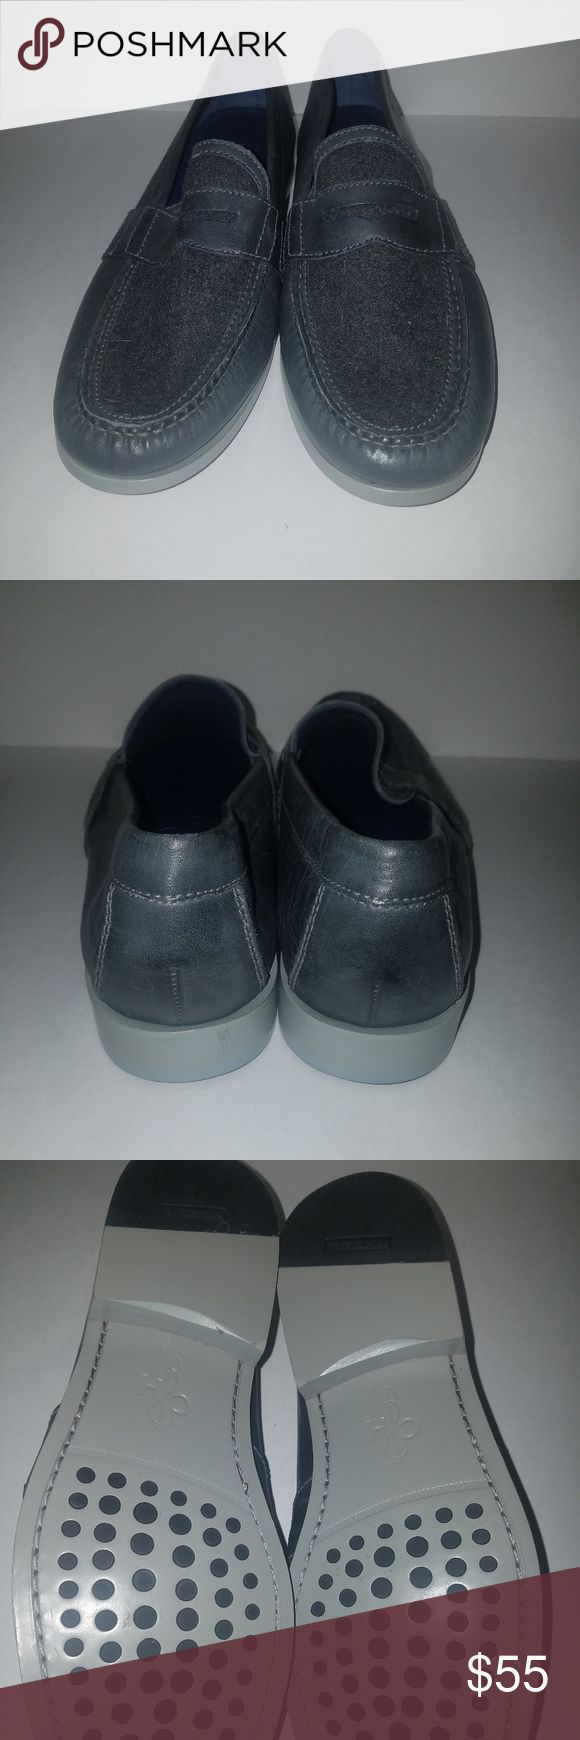 Cole Haan Air Monroe Cordovan Wool Penny Loafers Up for sale is a pair of Cole Haan Air Monroe Cordovan Wool Penny Loafer. They are a size 11.5 and great shape no holes or stains. These shoes were only worn twice. Cole Haan Shoes Loafers & Slip-Ons